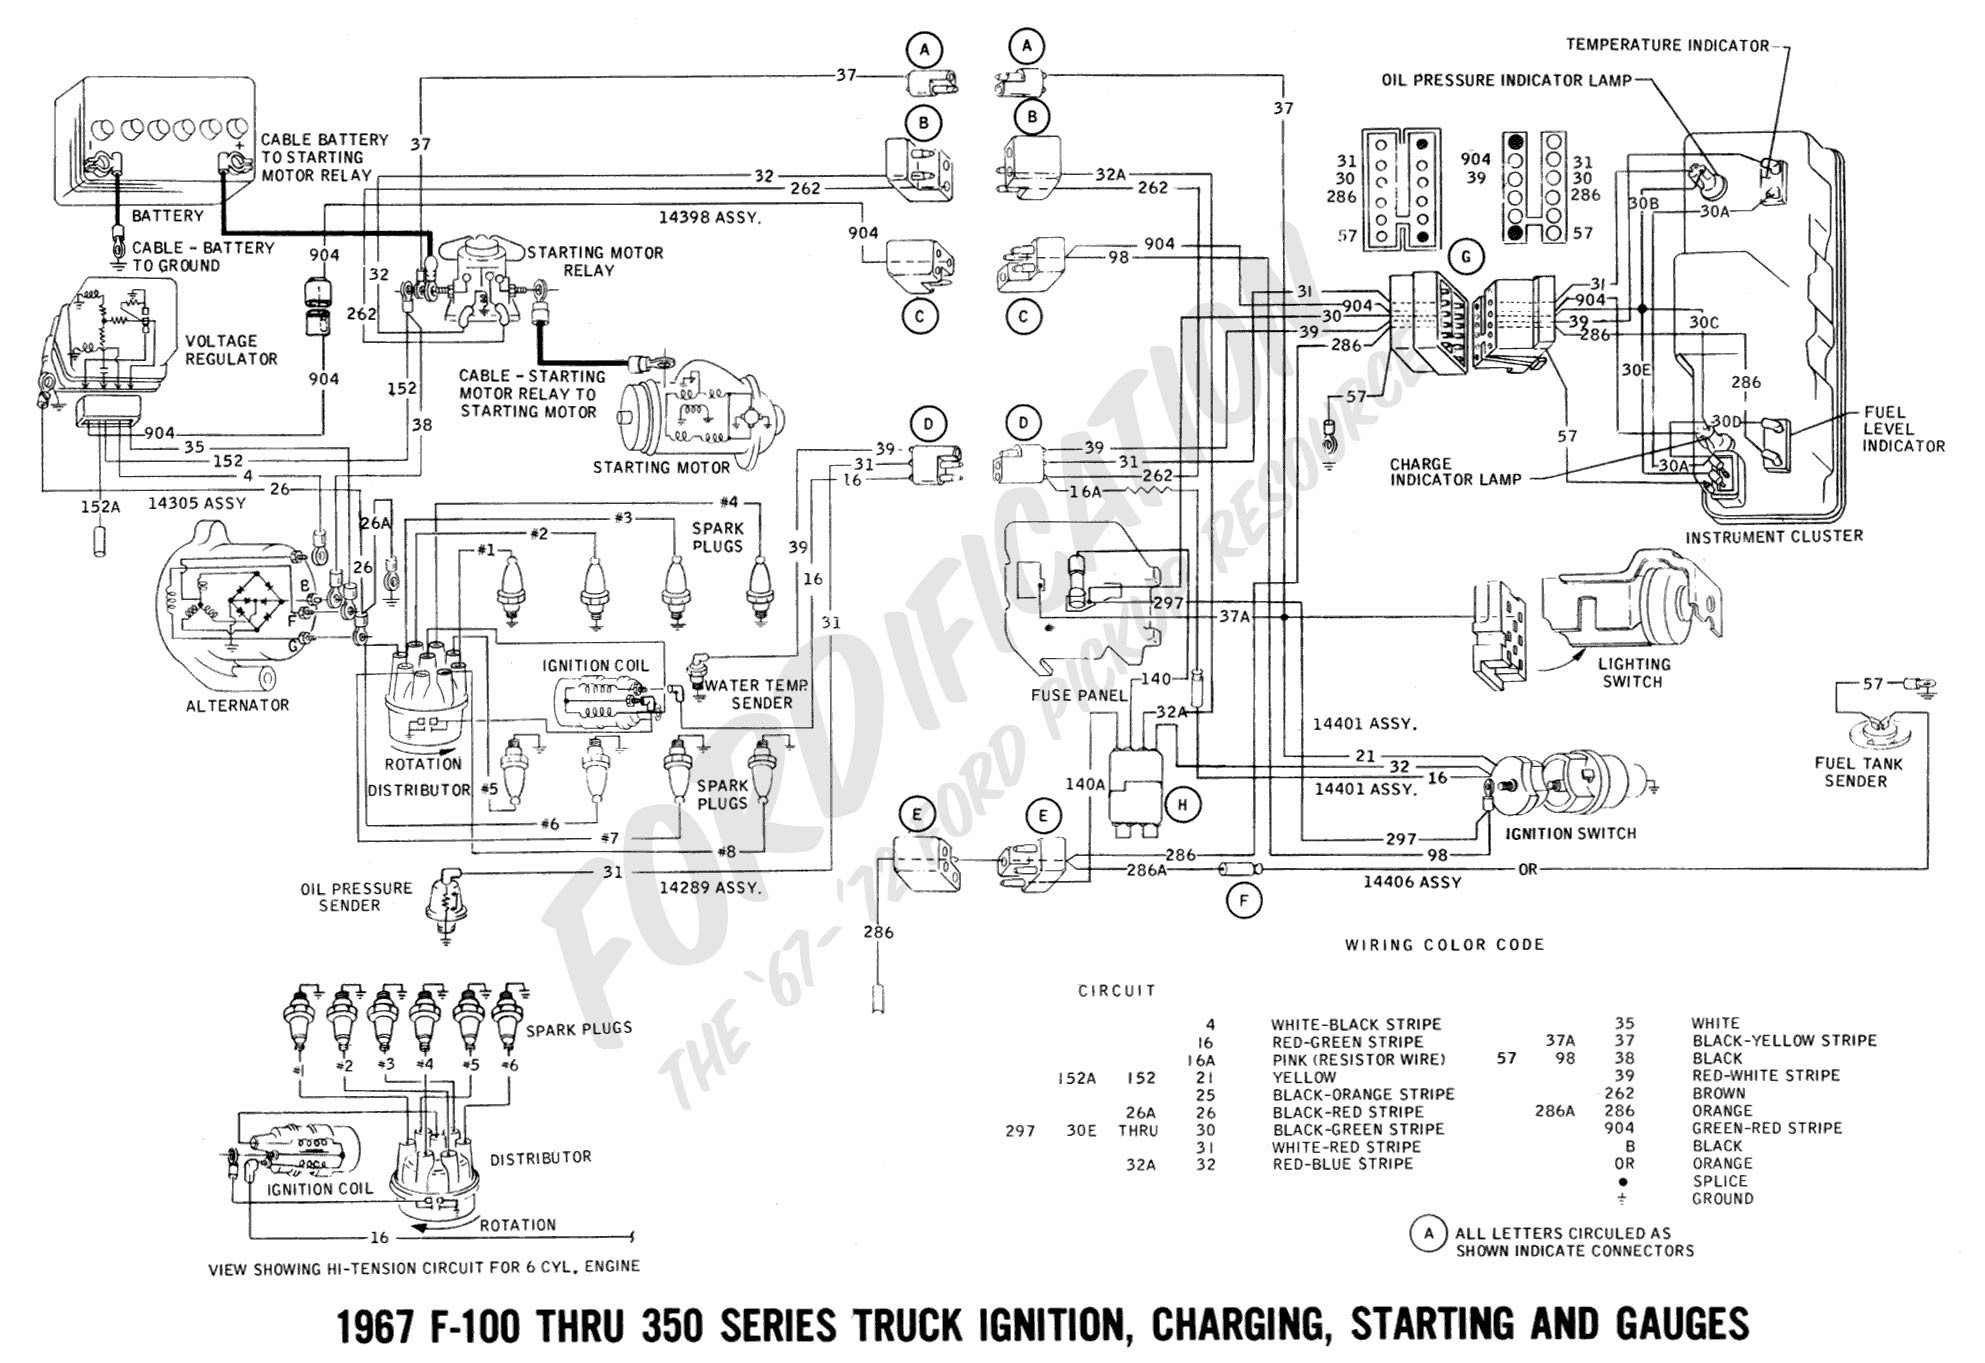 hight resolution of 2004 ford f150 engine diagram ford ignition switch wiring diagram f350 battery wiring diagram